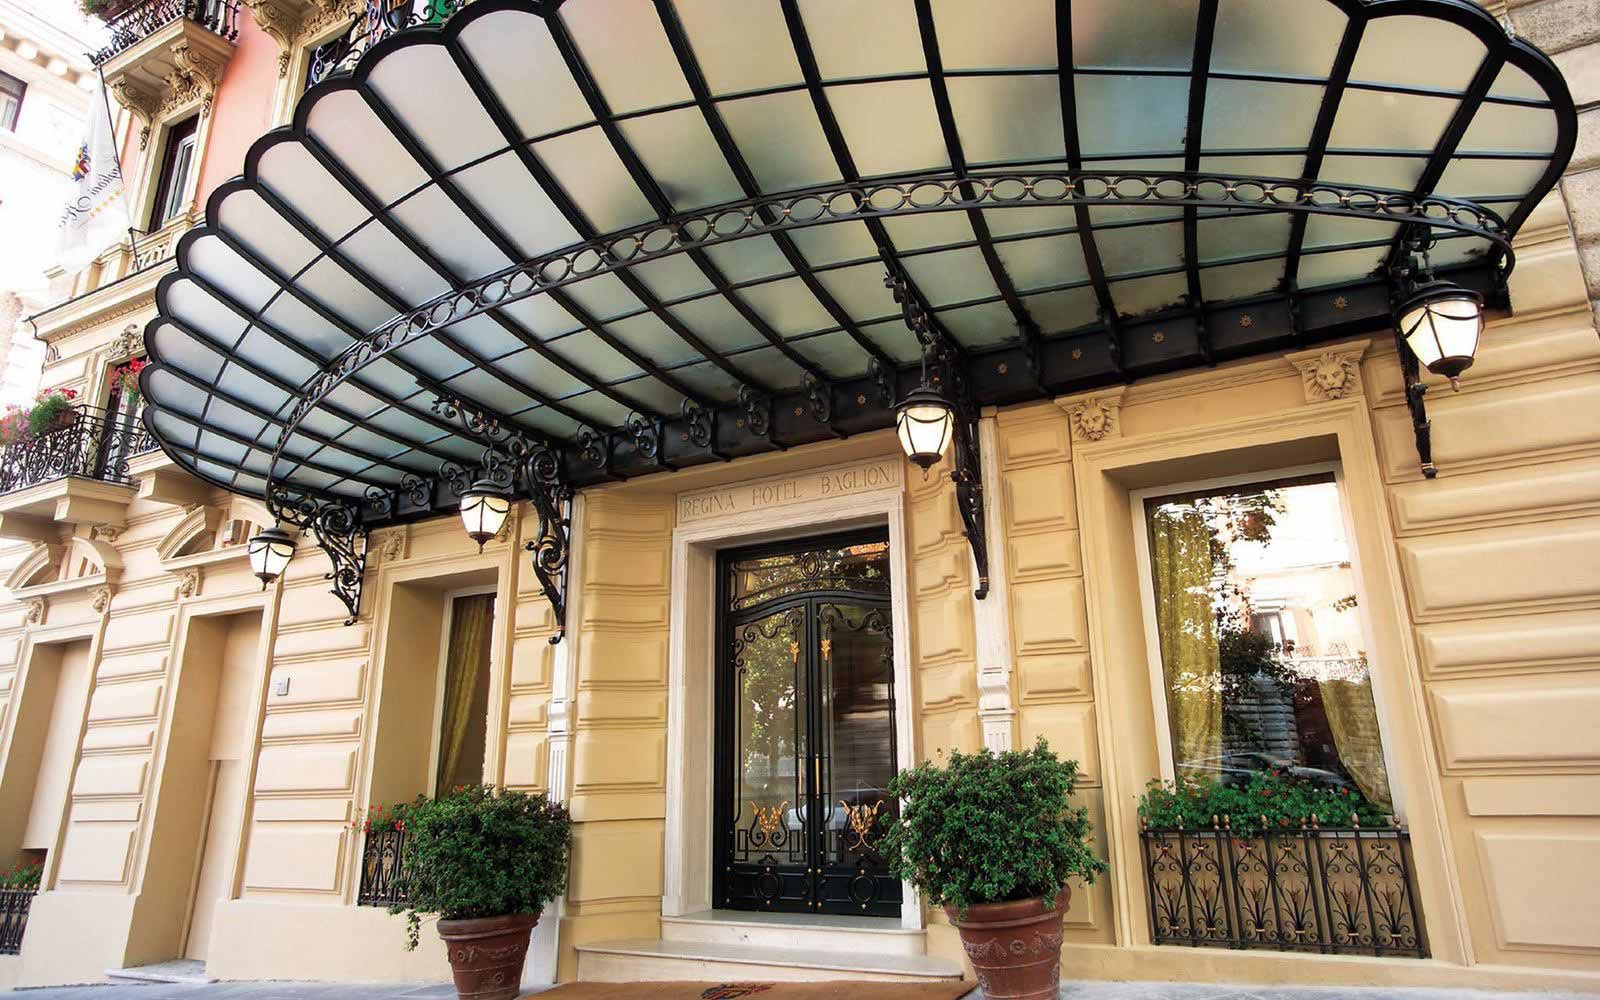 Entrance to Regina Hotel Baglioni